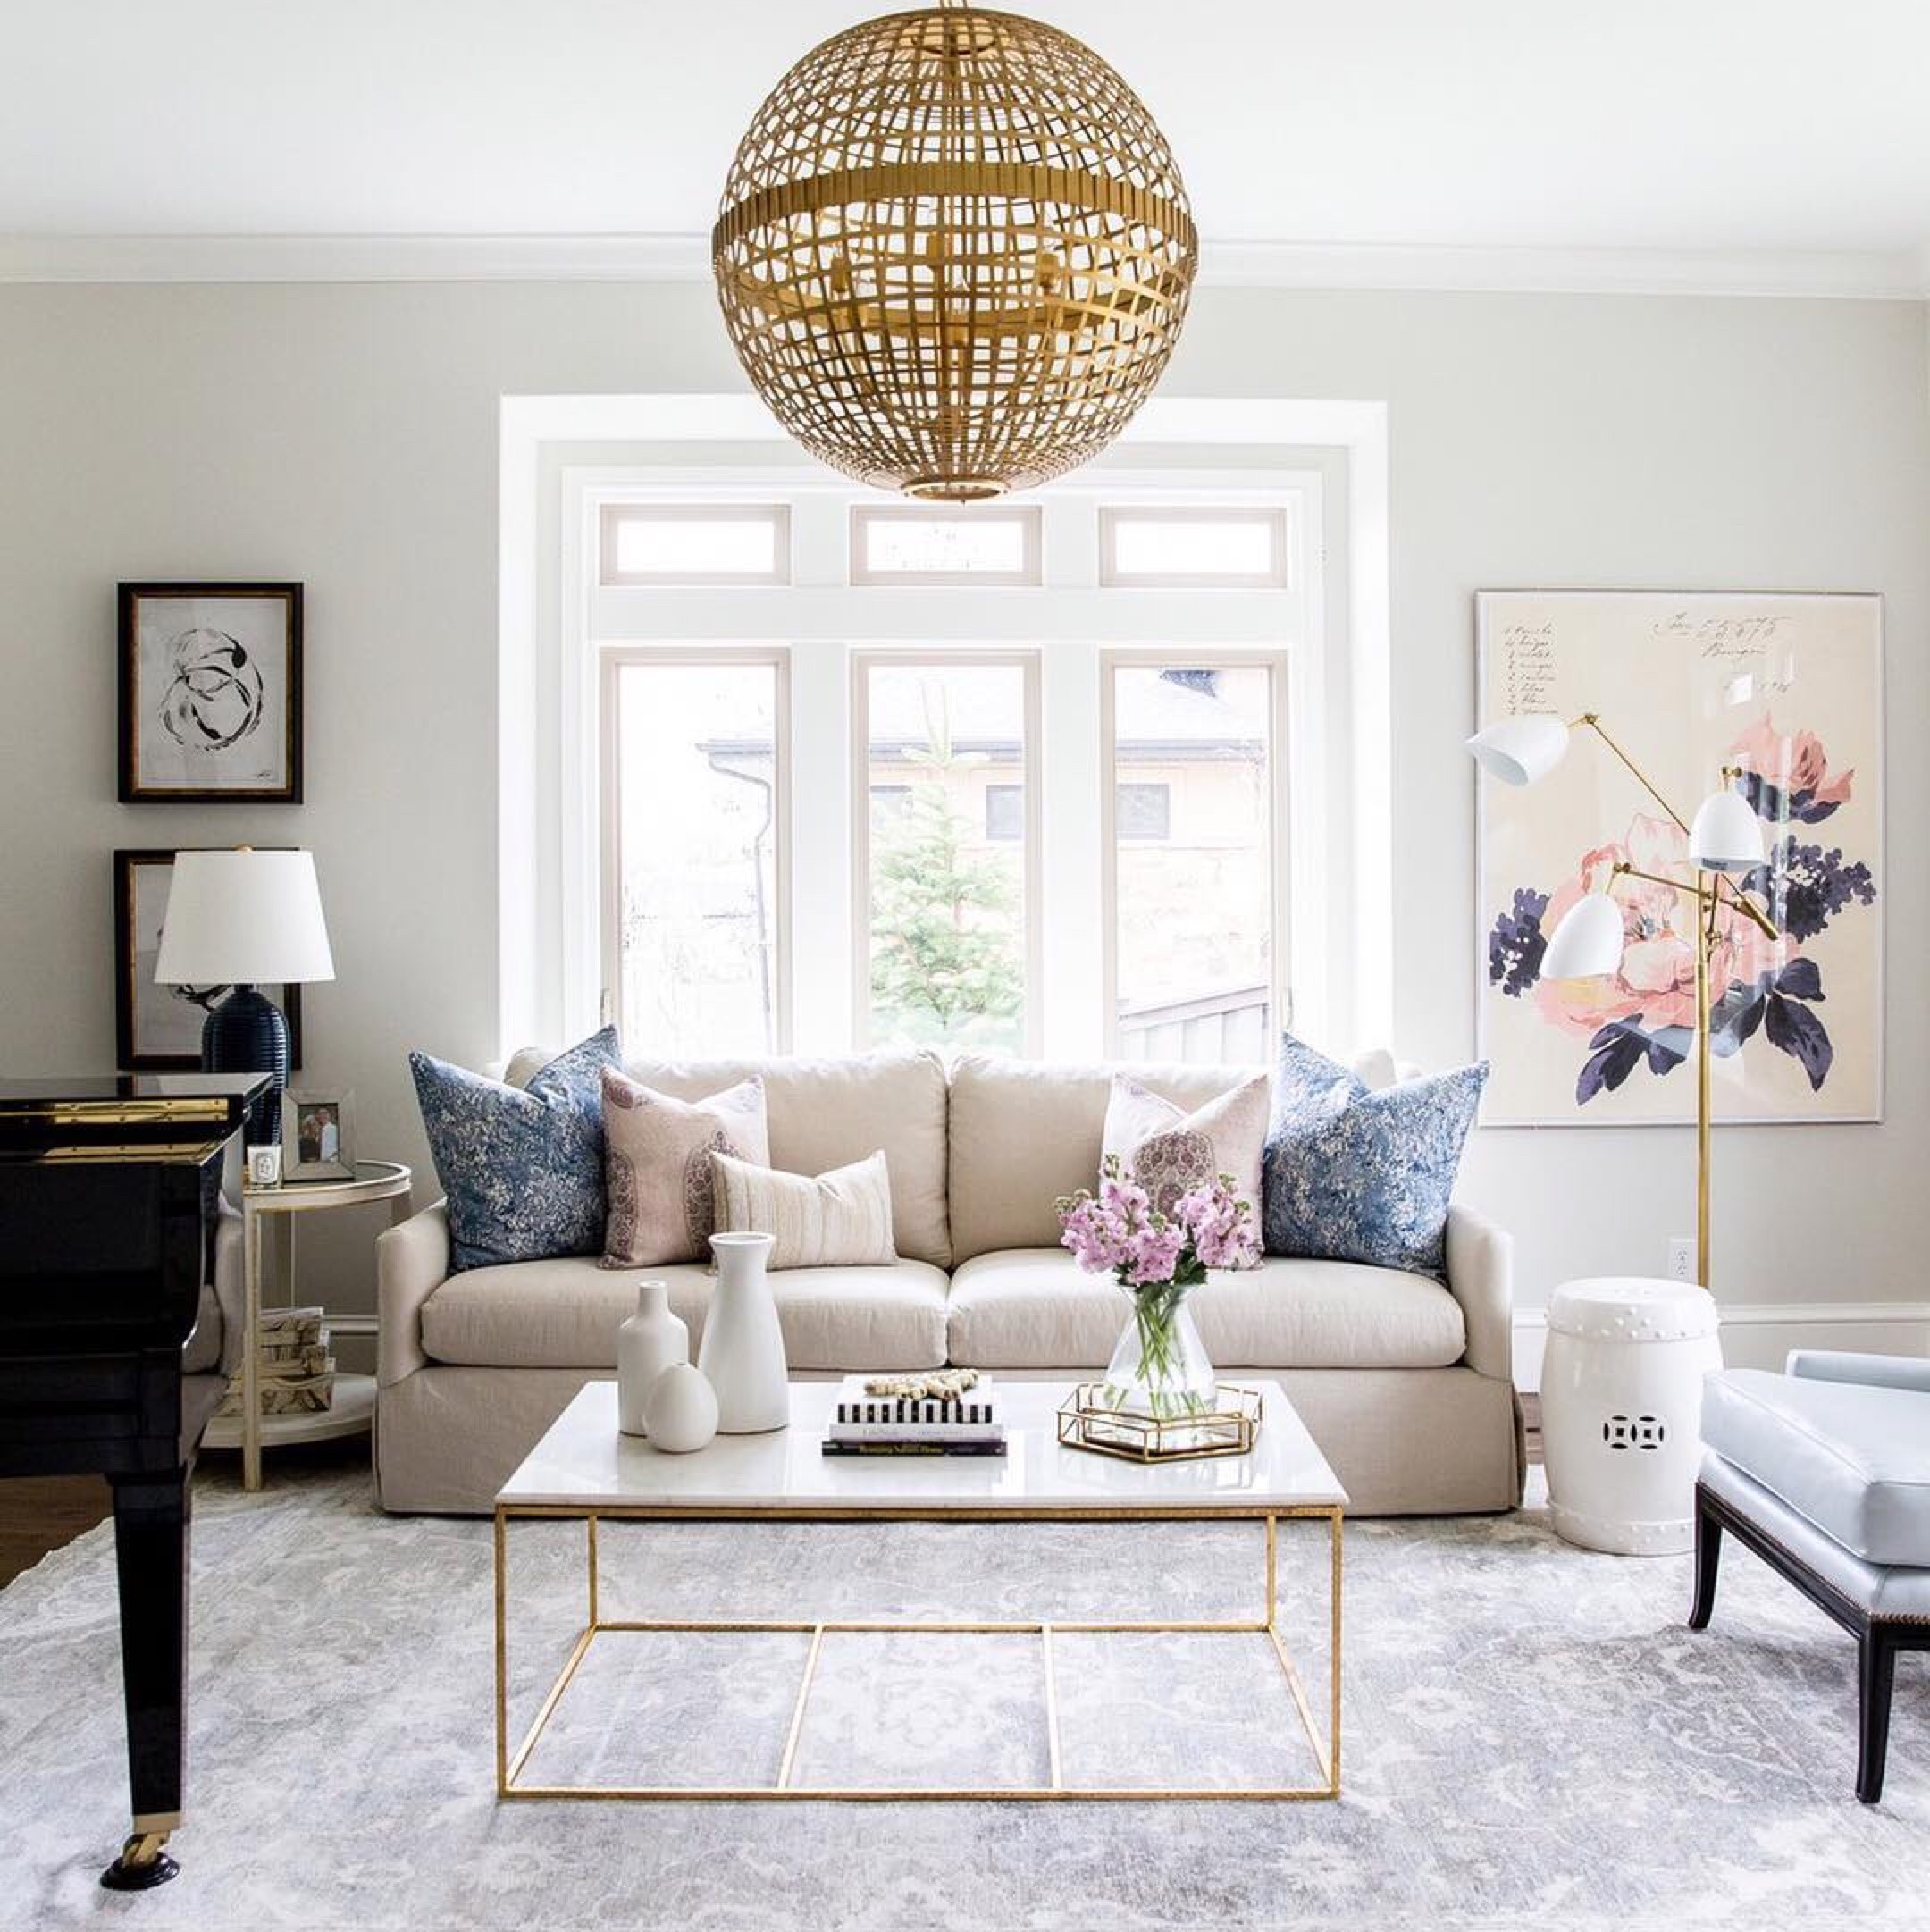 Shopping Archives - Cate Holcombe Interiors